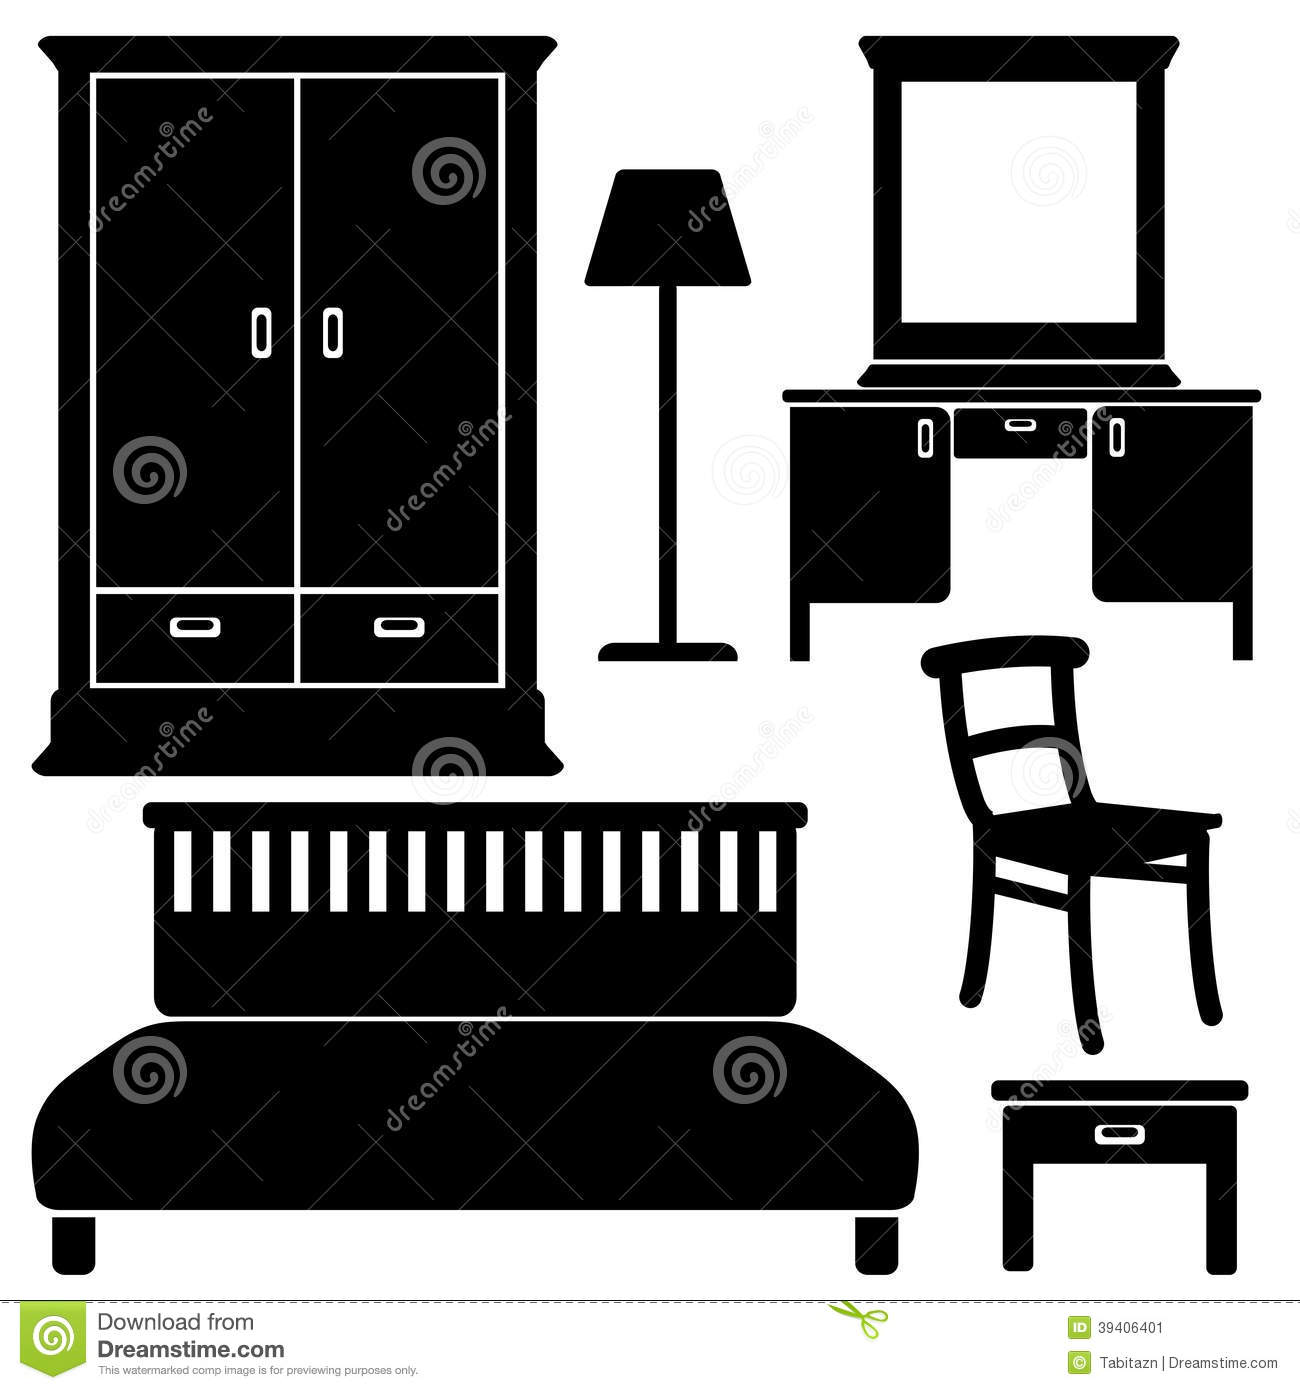 Bedroom Interior Design Set Furniture Vector ~ Black furniture icons bedroom set stock vector